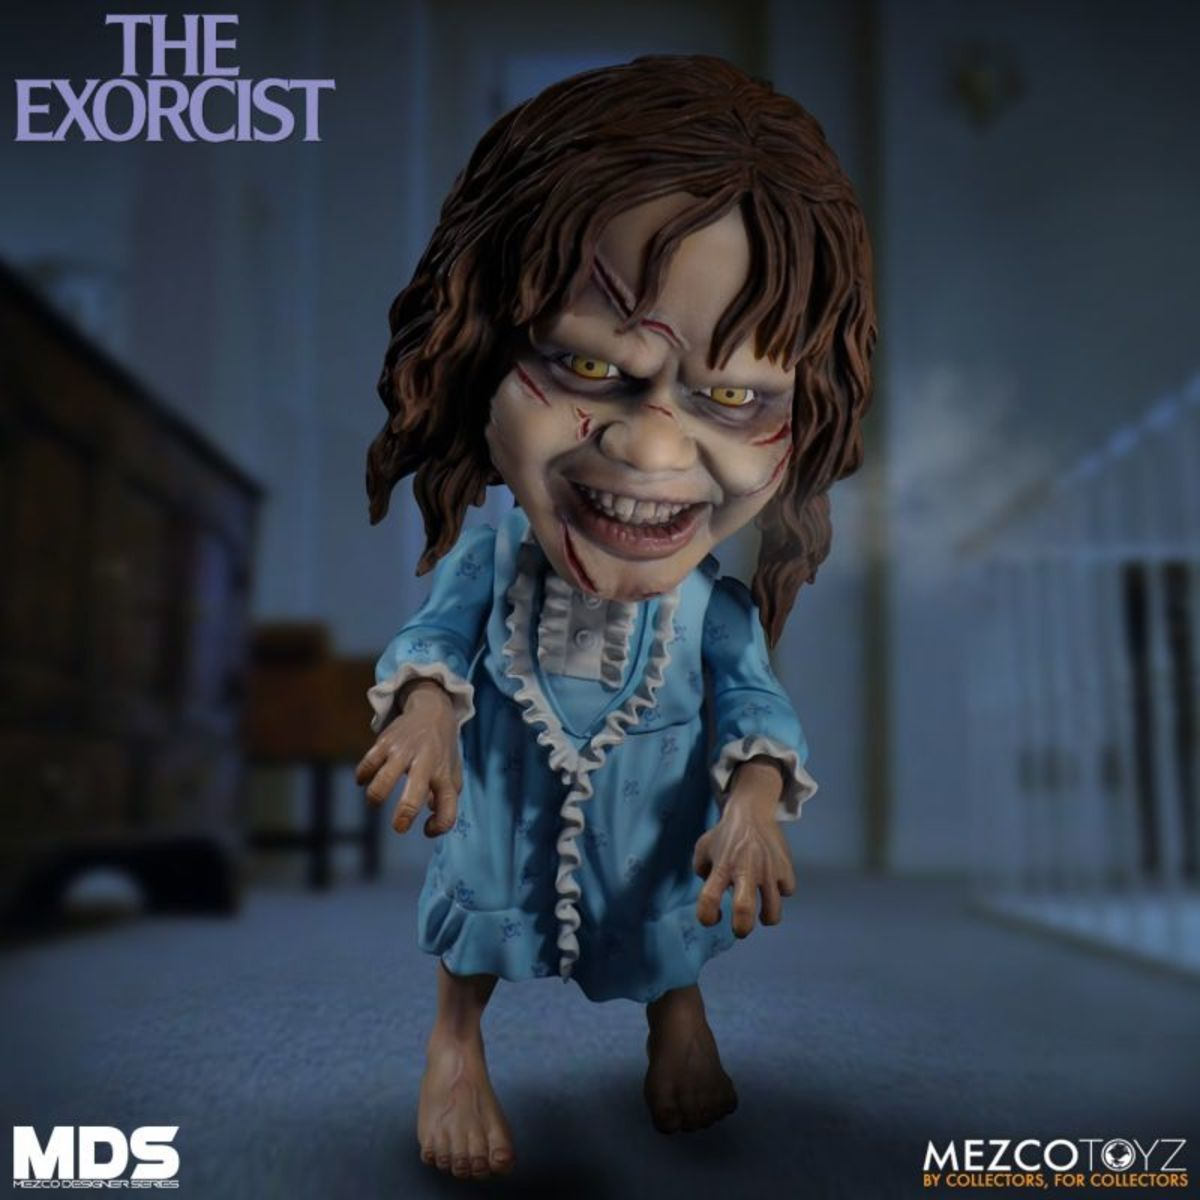 figurka The Exorcist - Regan MacNeil - MEZ42010